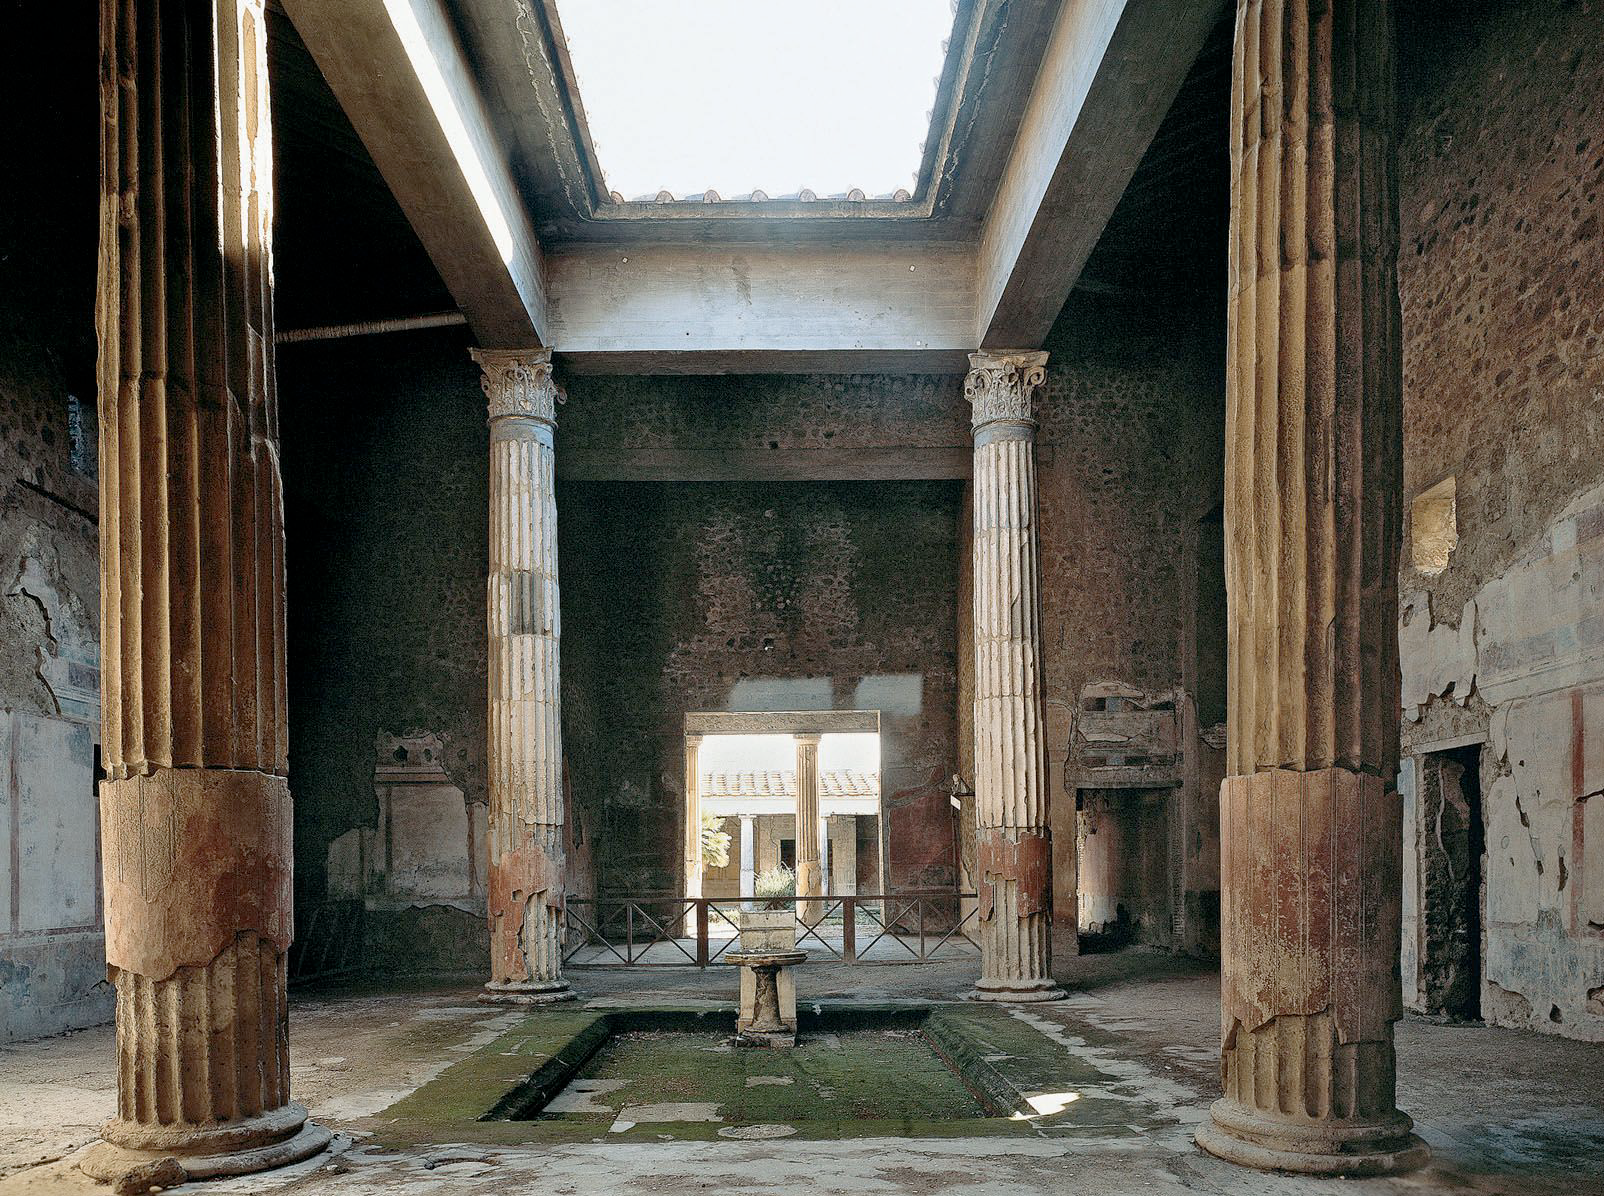 atrium house of the silver wedding pompeii early 1st century ce first century a d. Black Bedroom Furniture Sets. Home Design Ideas